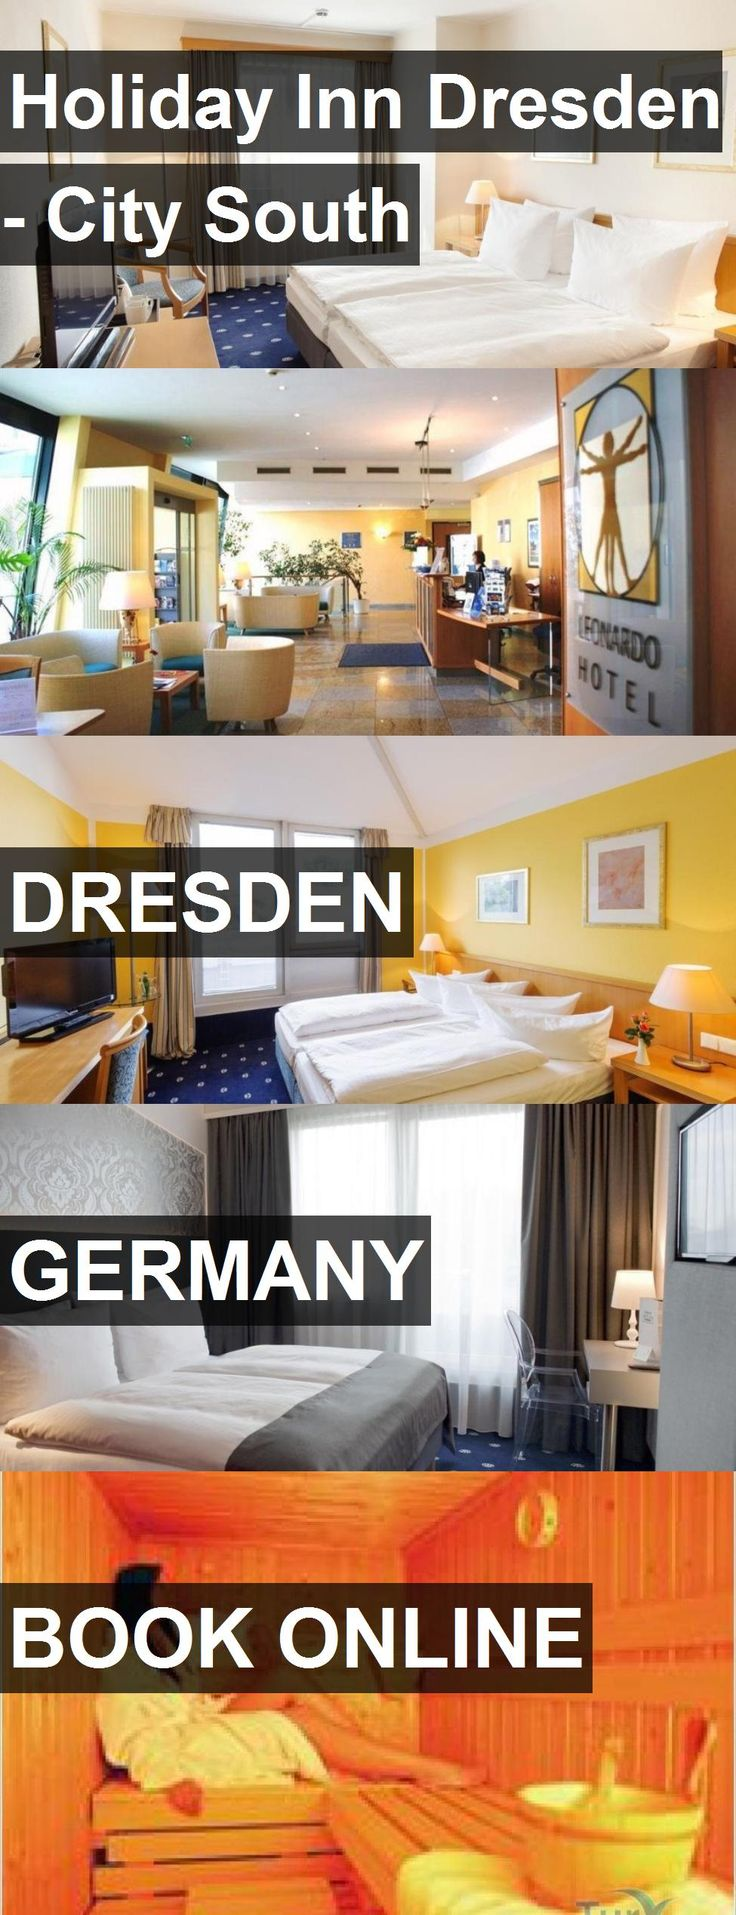 Hotel Holiday Inn Dresden - City South in Dresden, Germany. For more information, photos, reviews and best prices please follow the link. #Germany #Dresden #travel #vacation #hotel